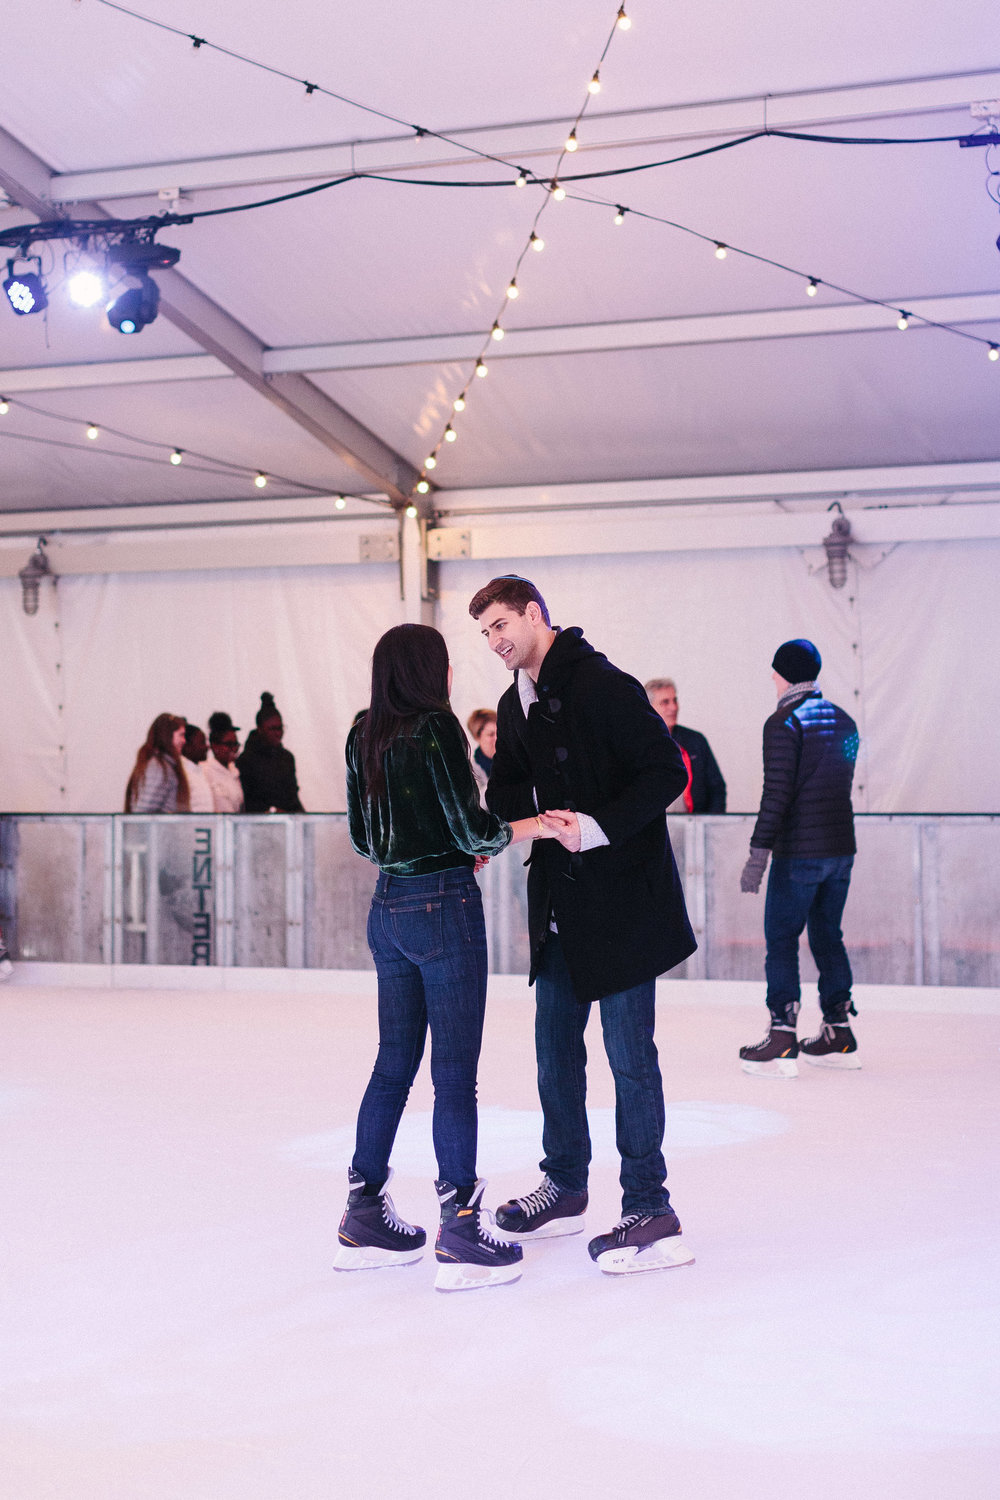 atlanta_proposal_photographer_ice_skating_rooftop_ponce_city_surprise_jewish_couple_1090.jpg